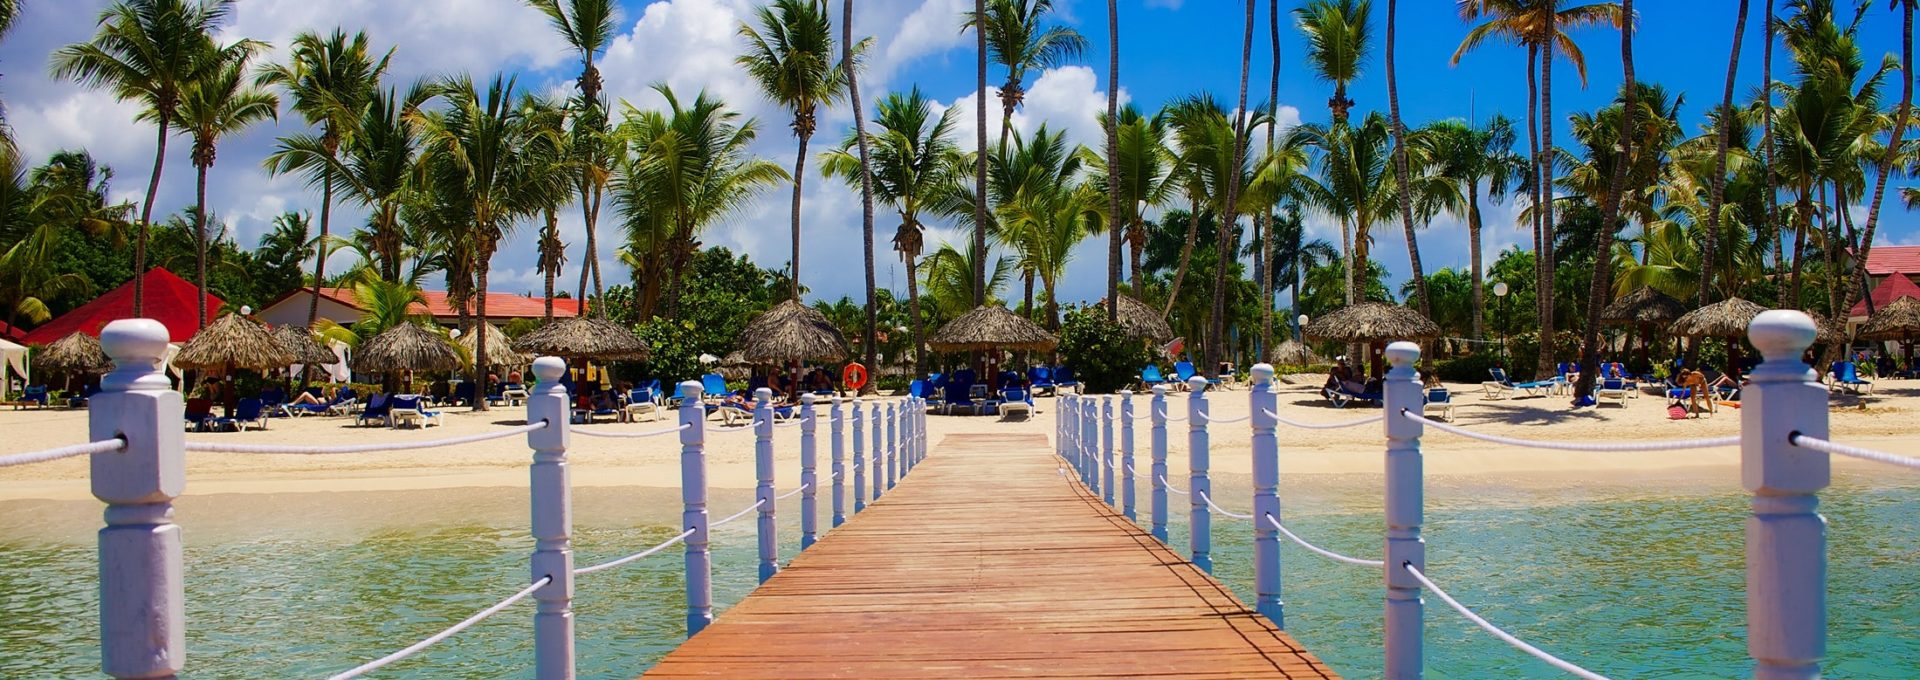 Centsible Travel & Vacations